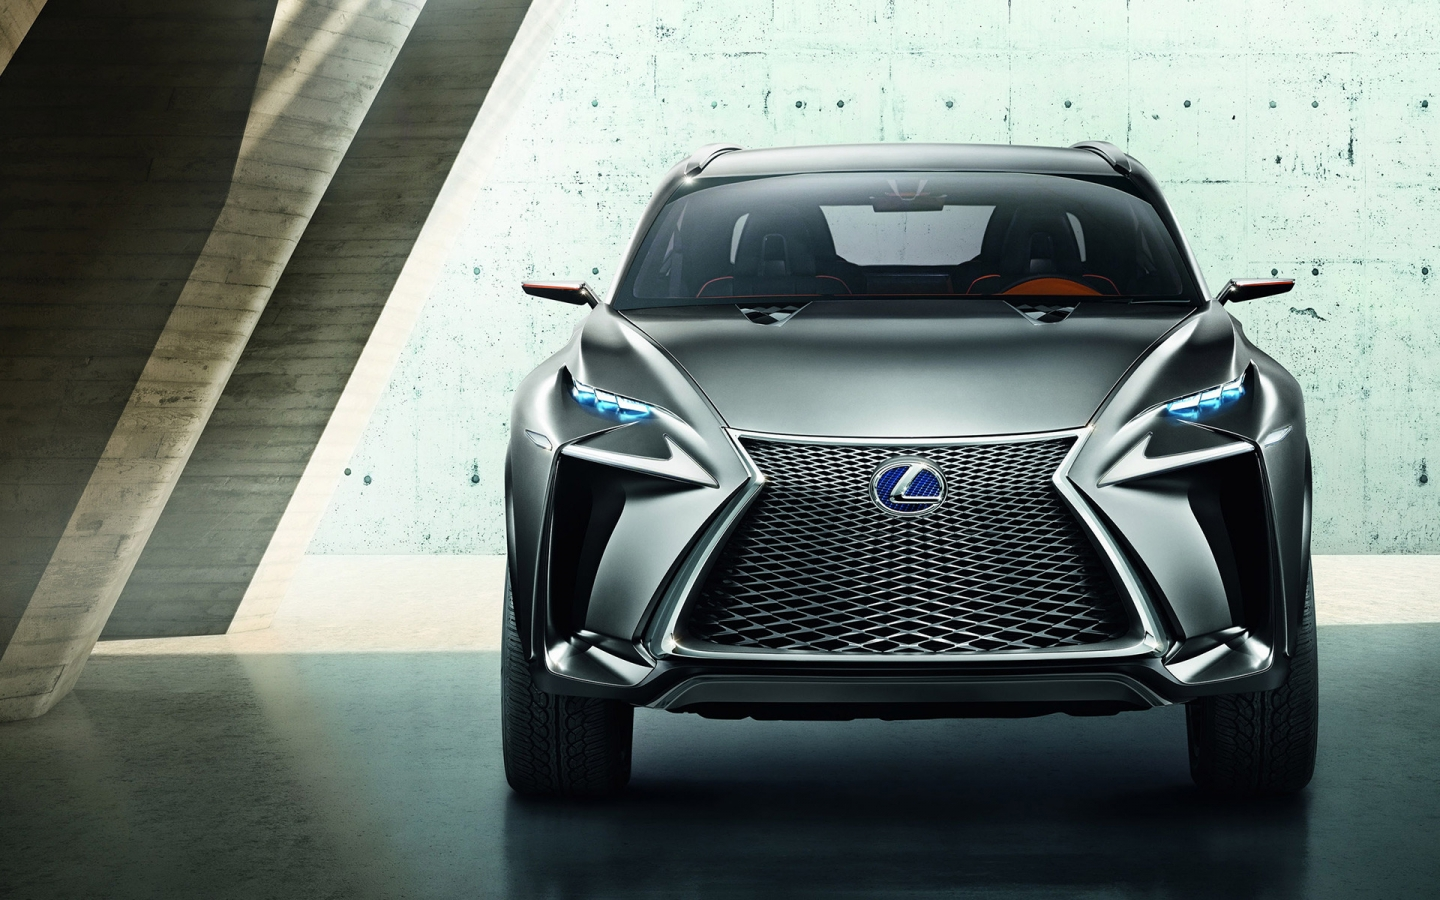 Lexus LF NX Crossover Concept for 1440 x 900 widescreen resolution